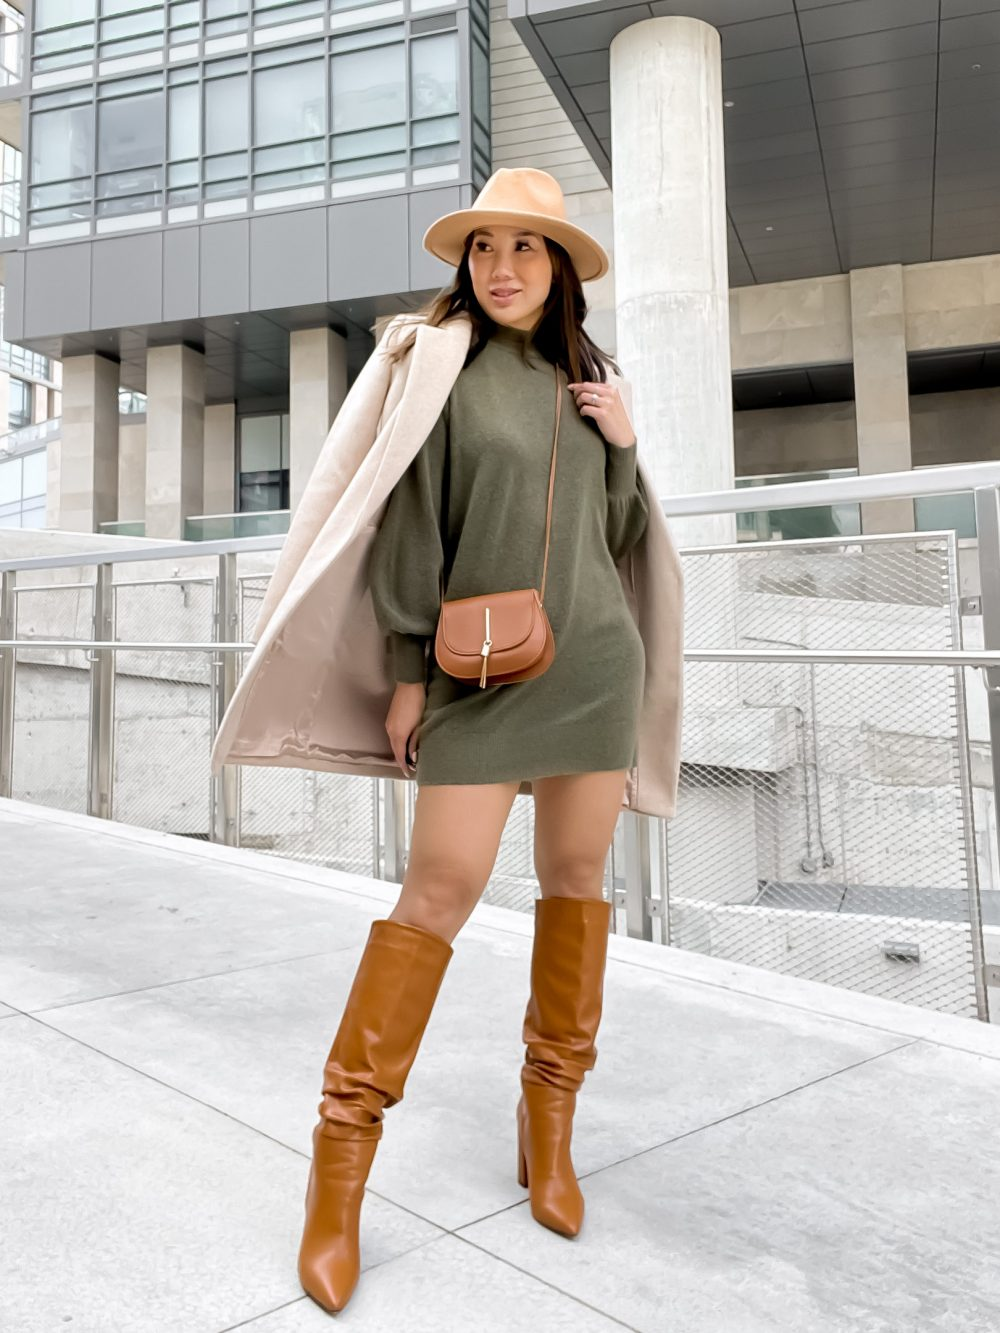 Knee high boots are a fall and winter must have! Stylish and warm they're perfect to wear with dresses and jeans alike. Find out what other essential shoes you need in your wardrobe on yesmissy.com